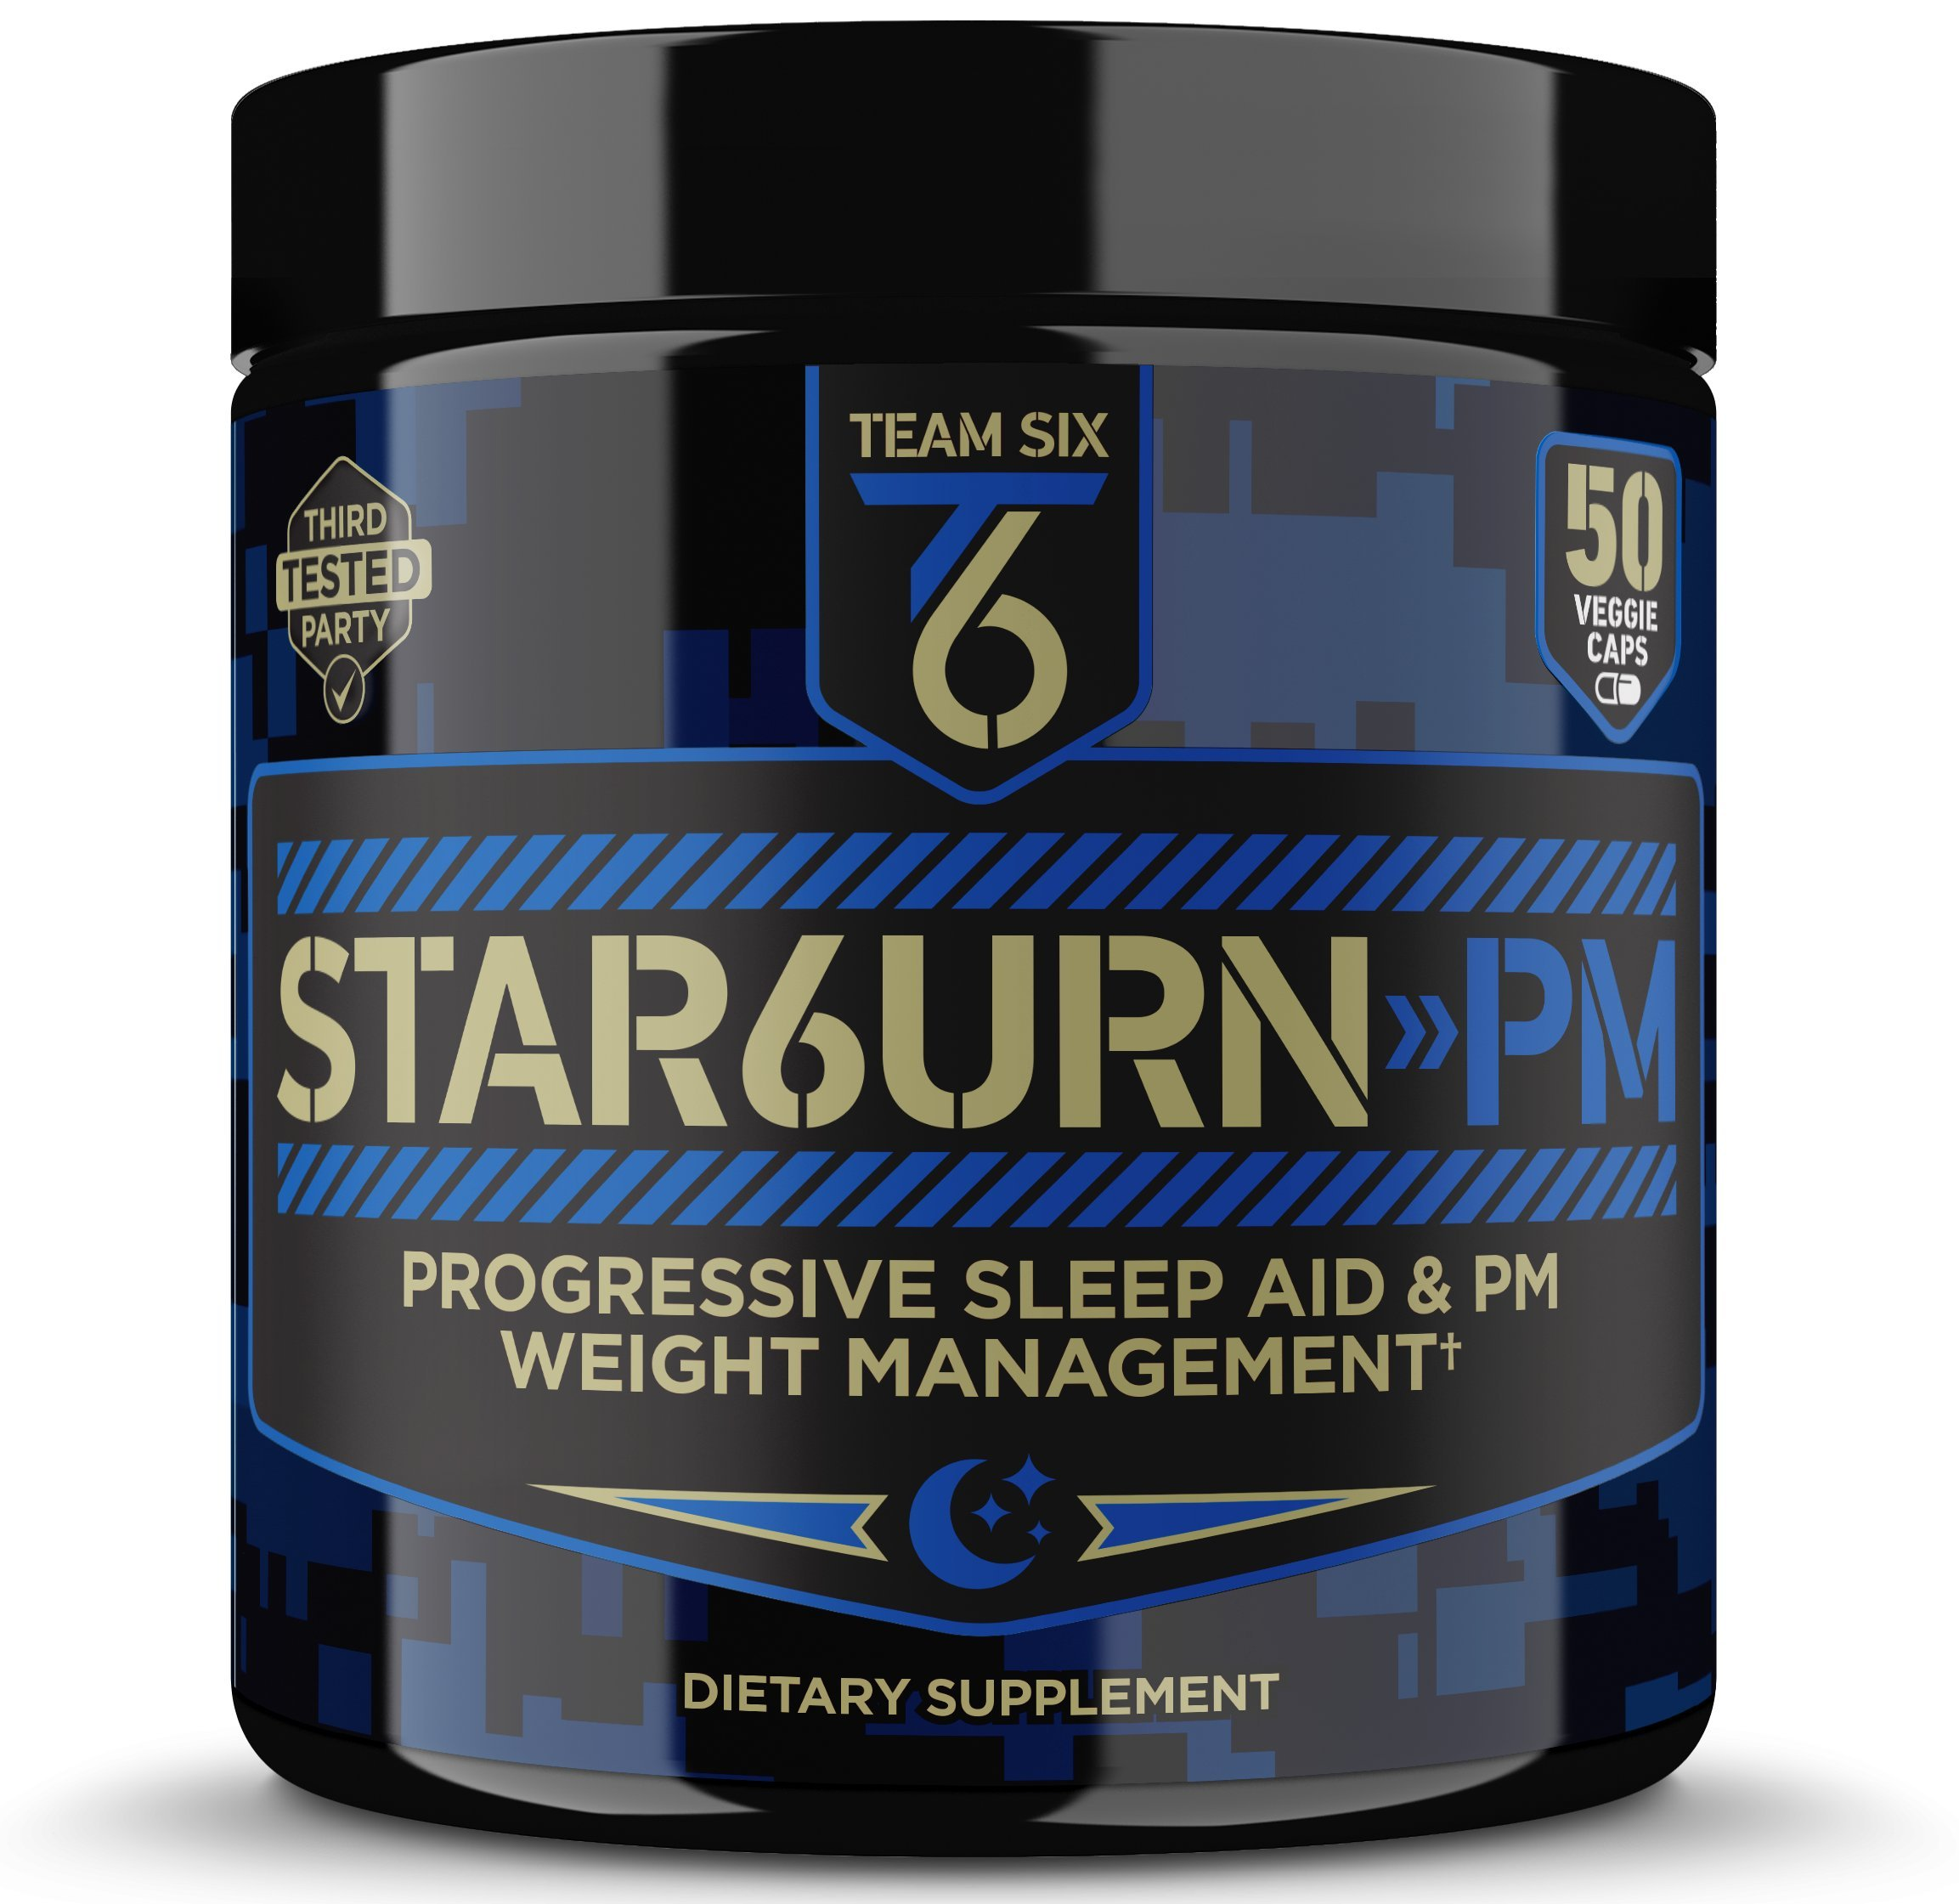 T6 STAR6URN-PM - Fat Burner and Sleep Aid for Muscle-Preserving Weight Loss and Stress Relief, Green Coffee Bean and Garcinia Cambogia Extract, 50 veggie caps by Team Six Supplements